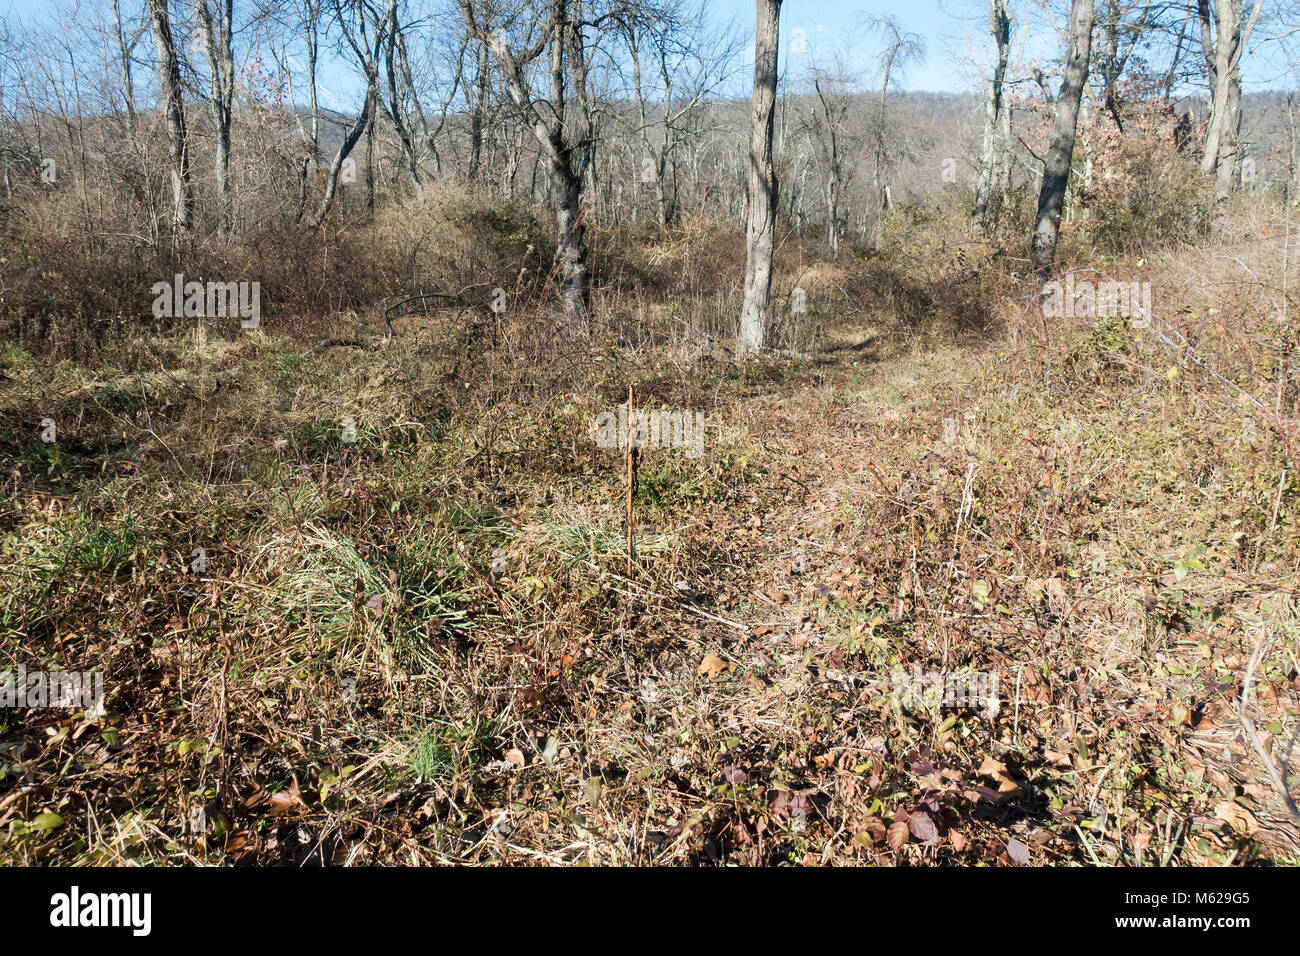 Walking trail in wooded Appalachian forest during early winter, showing shrubs and trees in dormancy - Pennsylvania - Stock Image